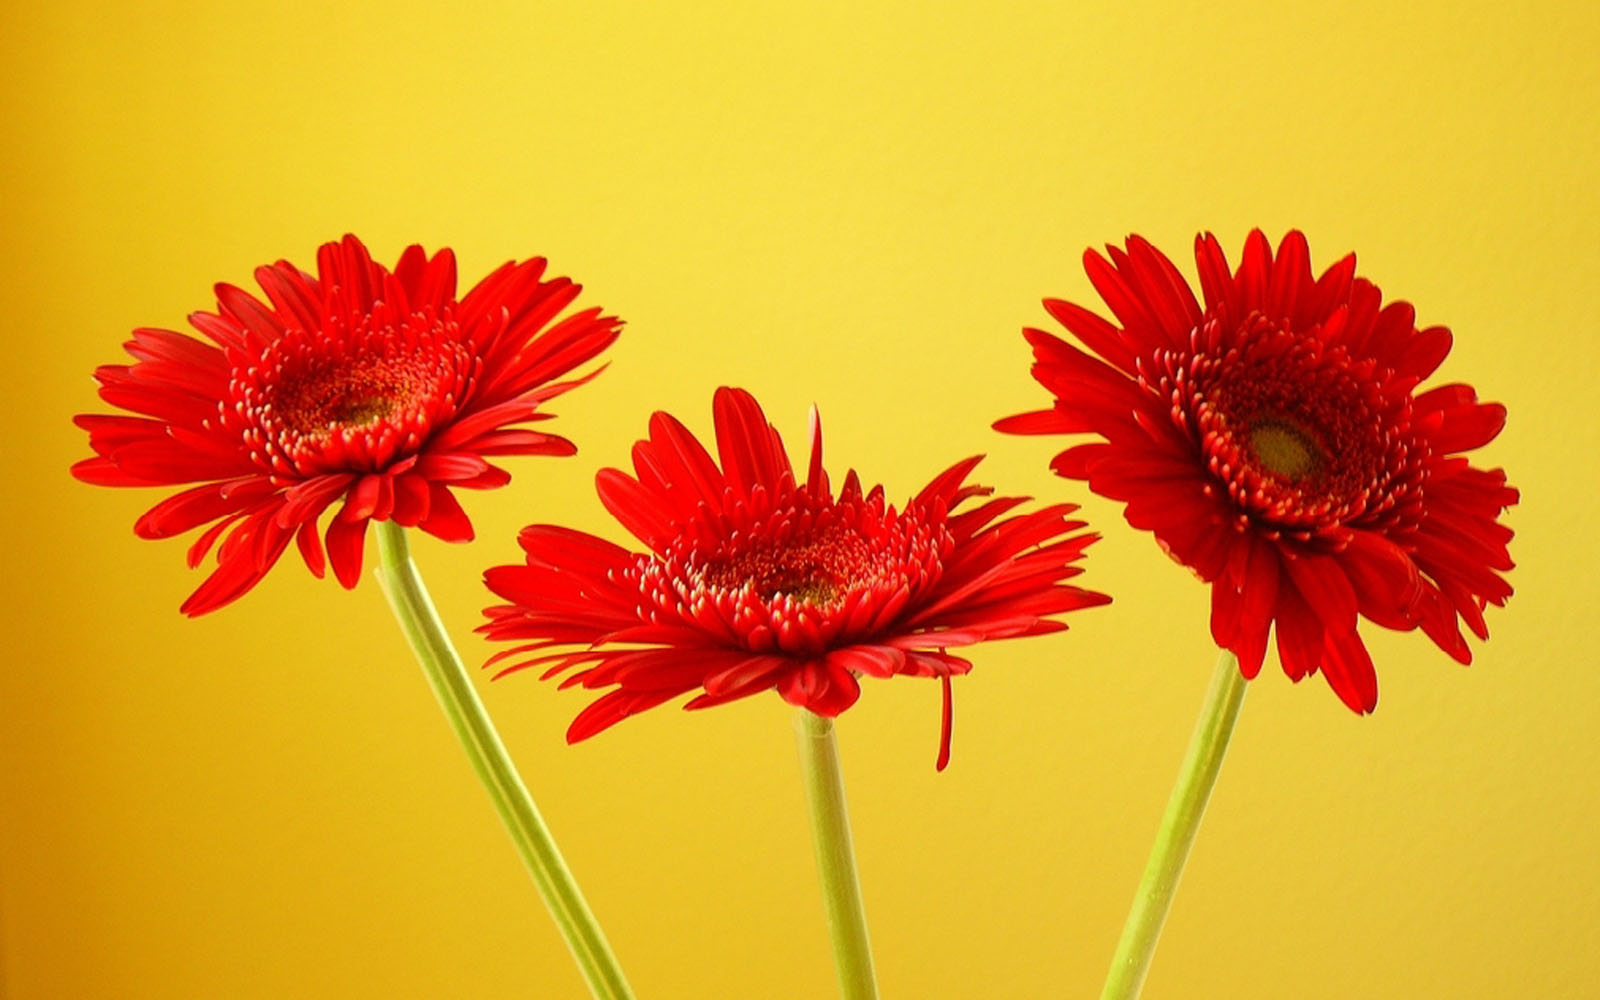 Gerber Gerbera+Flowers+Wallpapers+%25283%2529